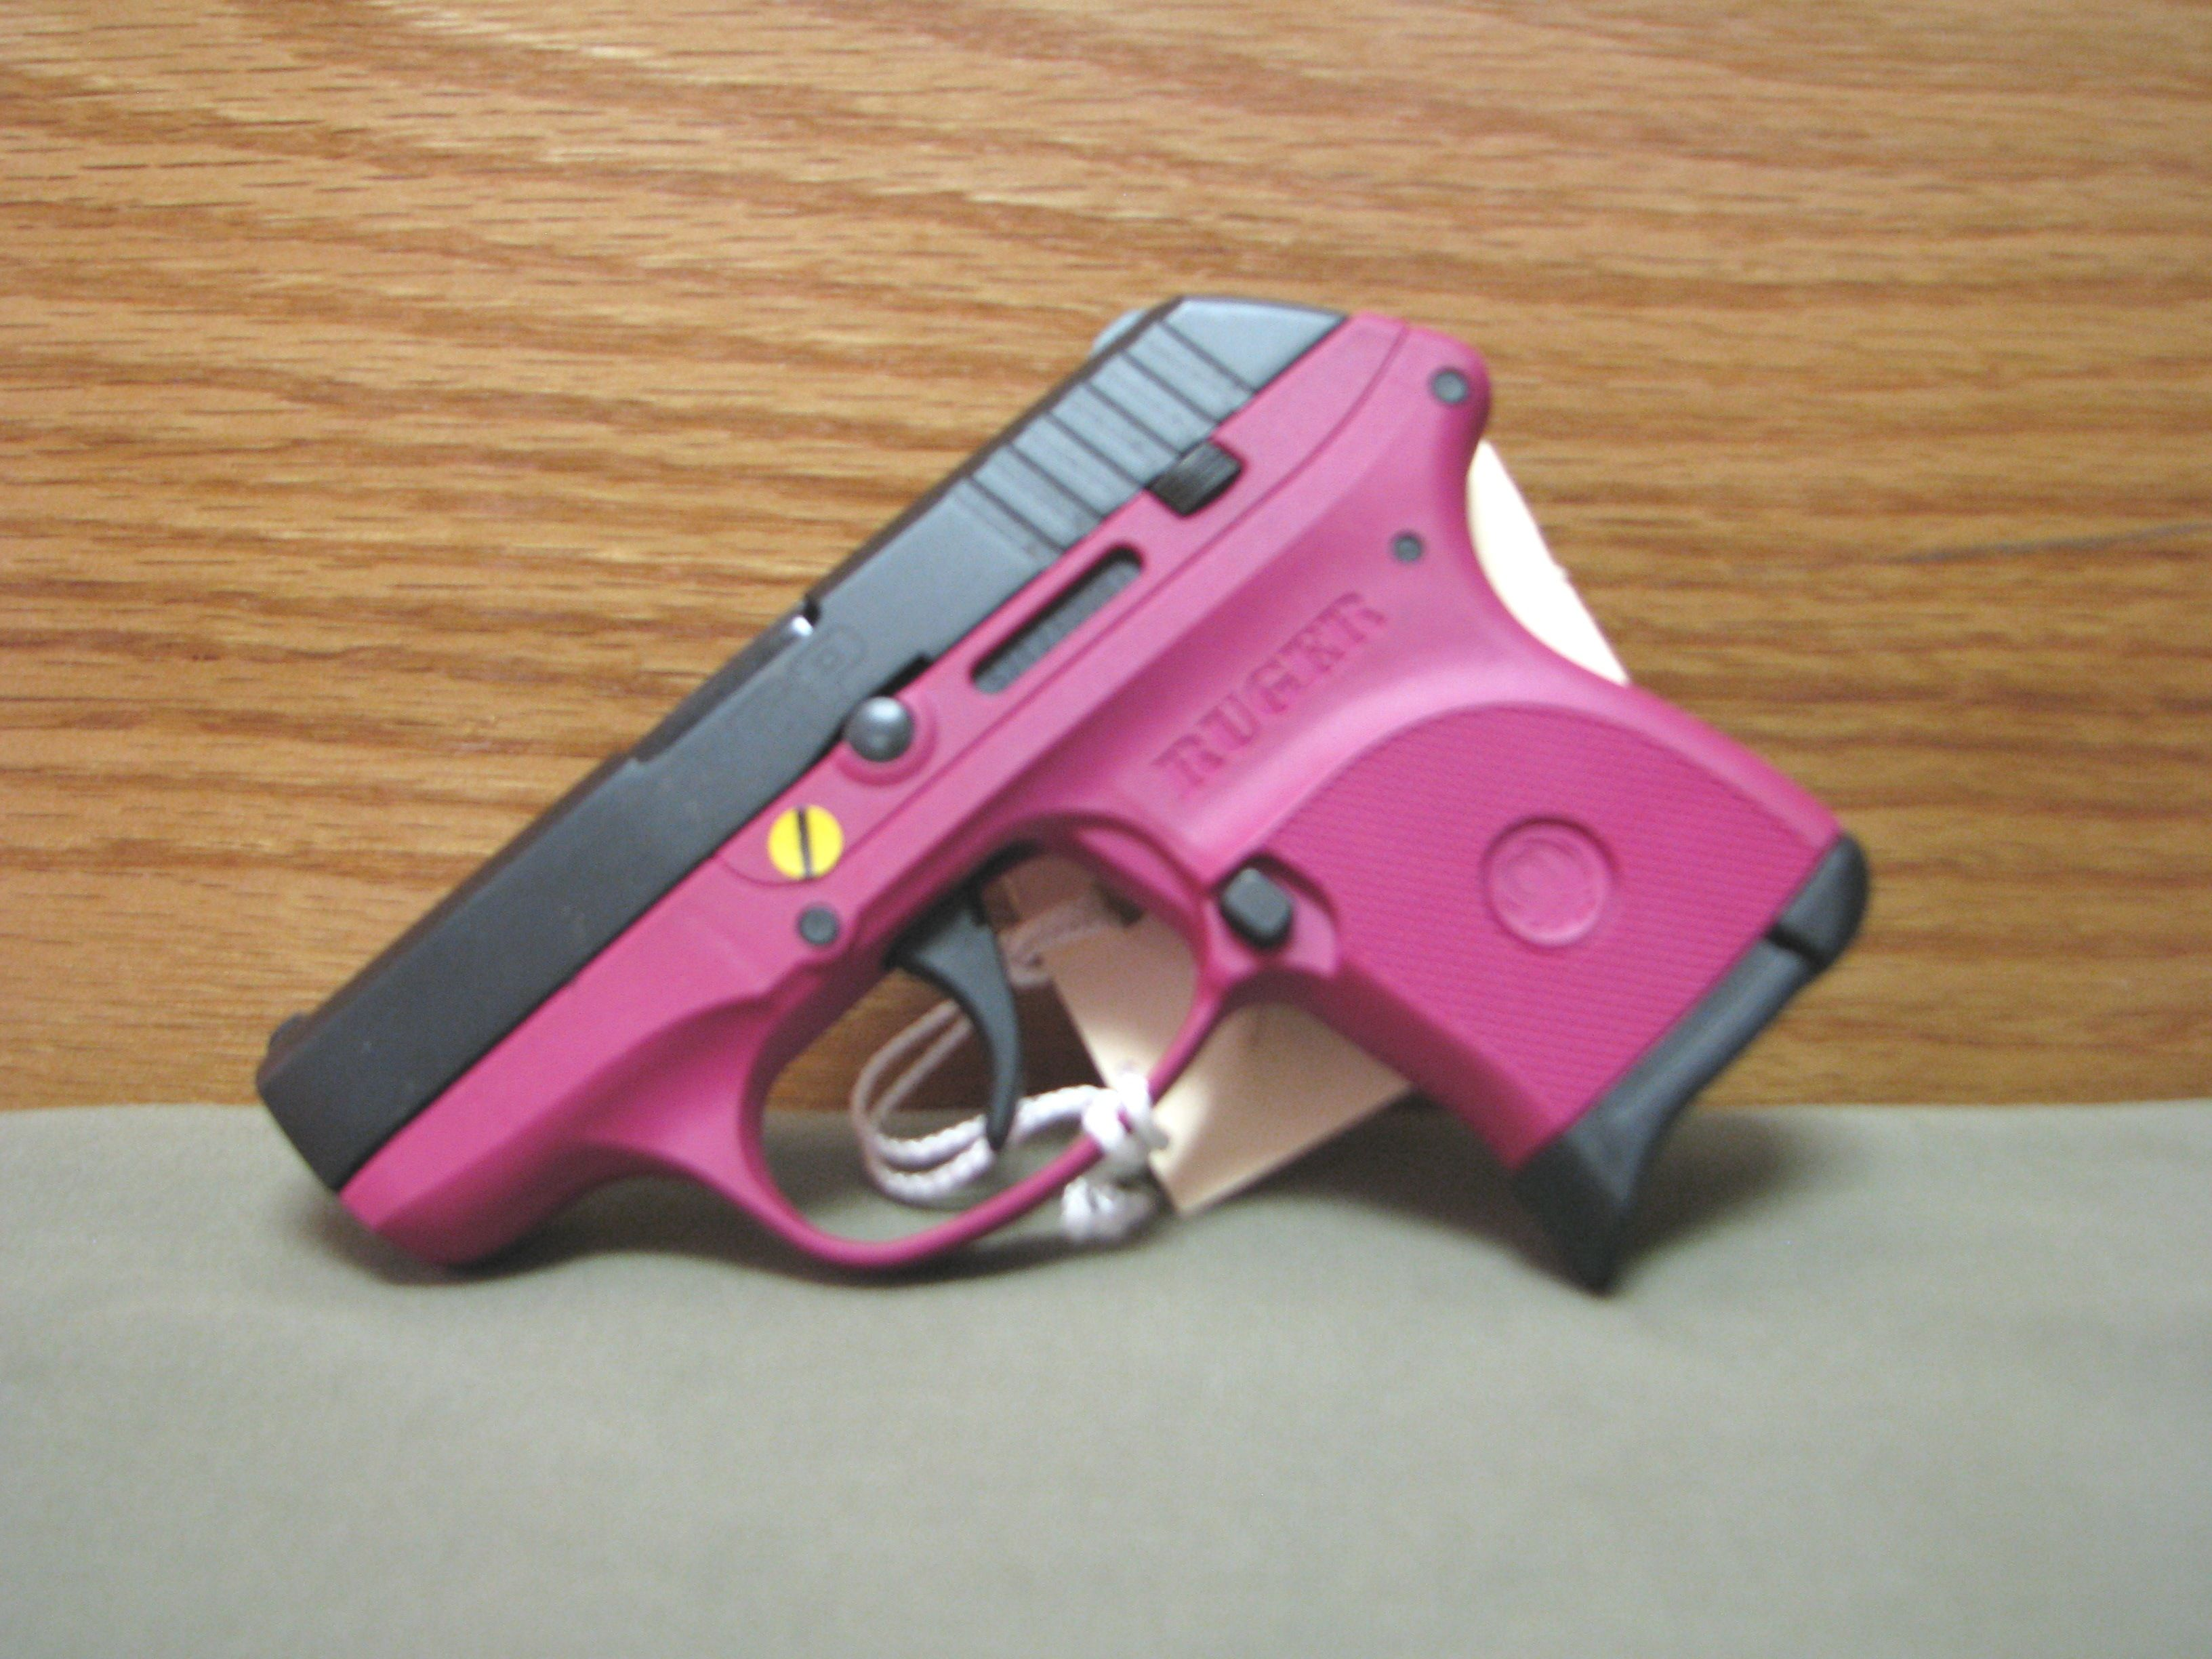 Ruger Lcp 380 Raspberry Guns Pinterest Guns Ruger Lcp And